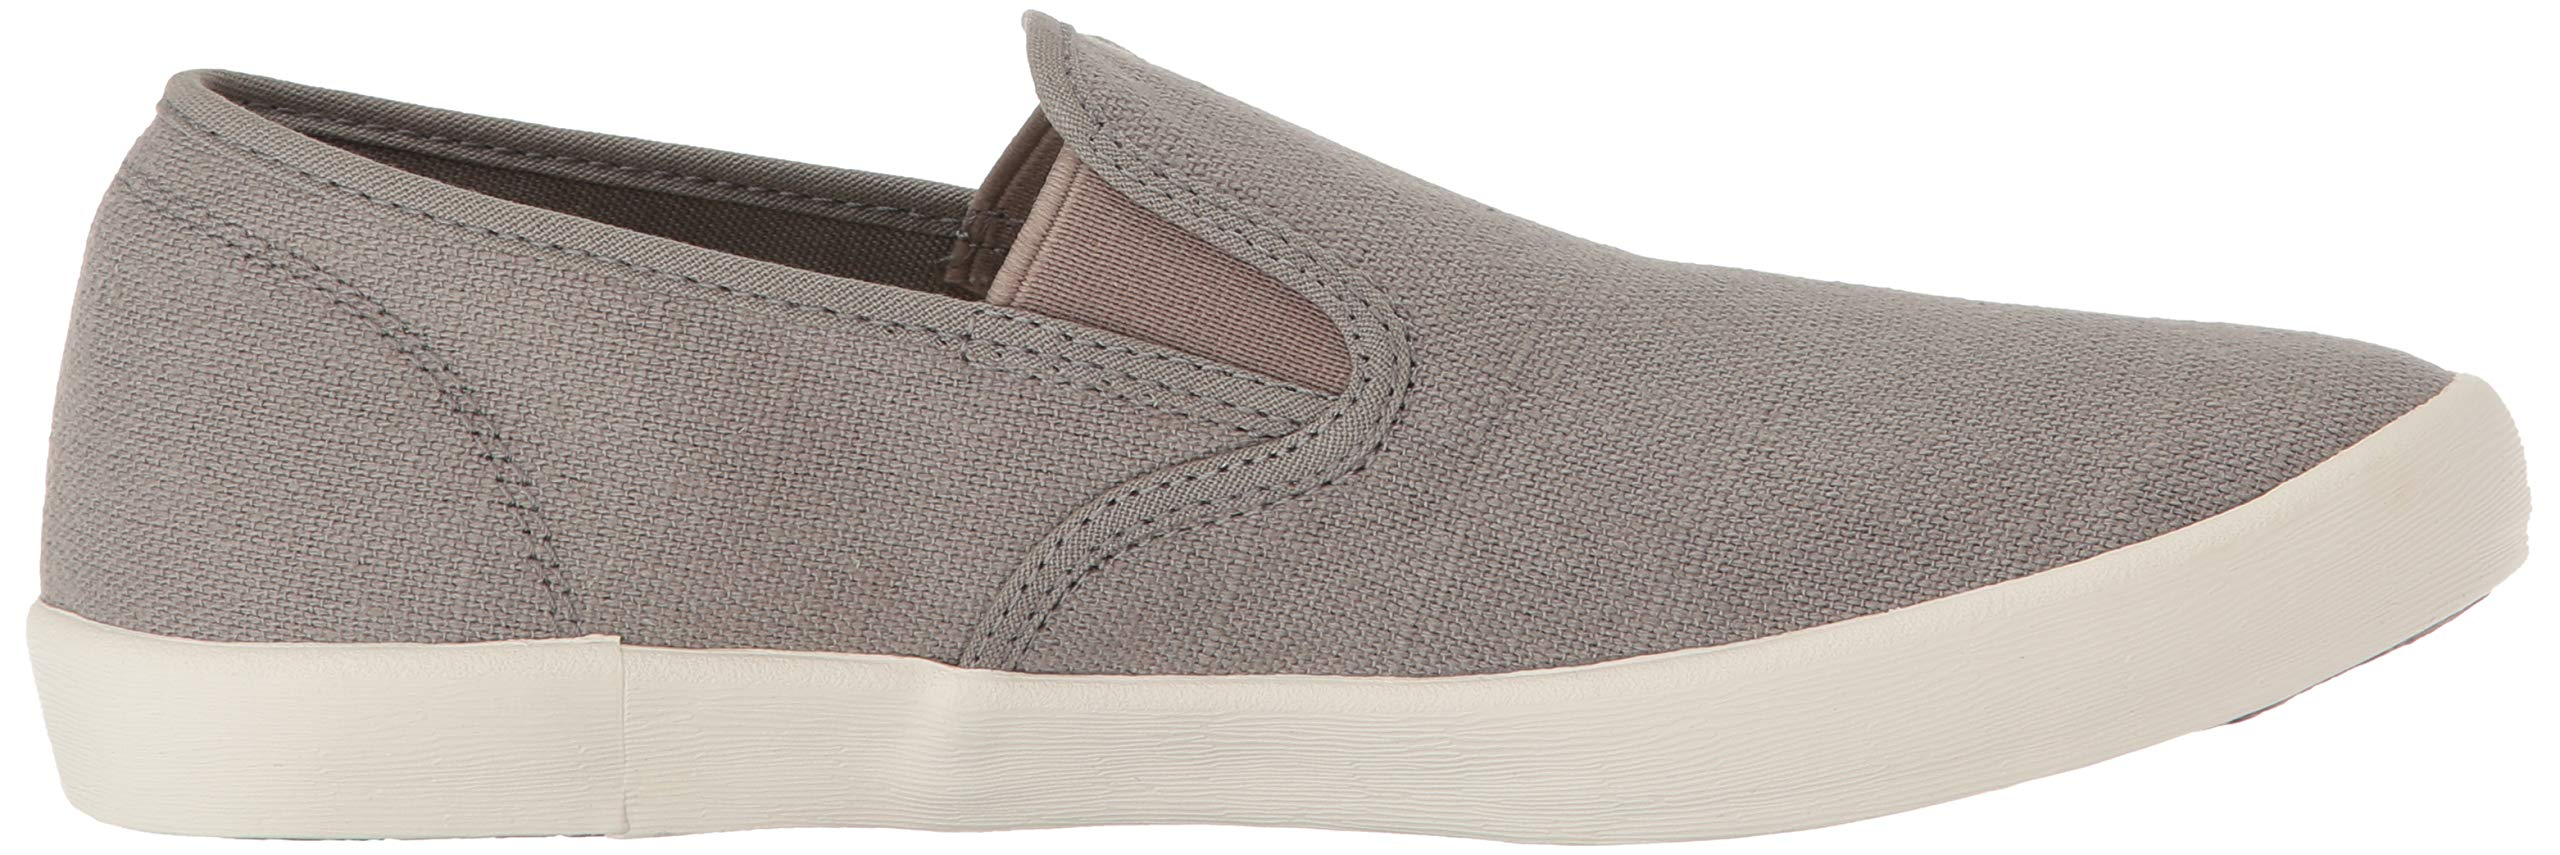 SeaVees Men's Baja Slip On Standard Casual Sneaker,Tin Grey, 12 by SeaVees (Image #7)